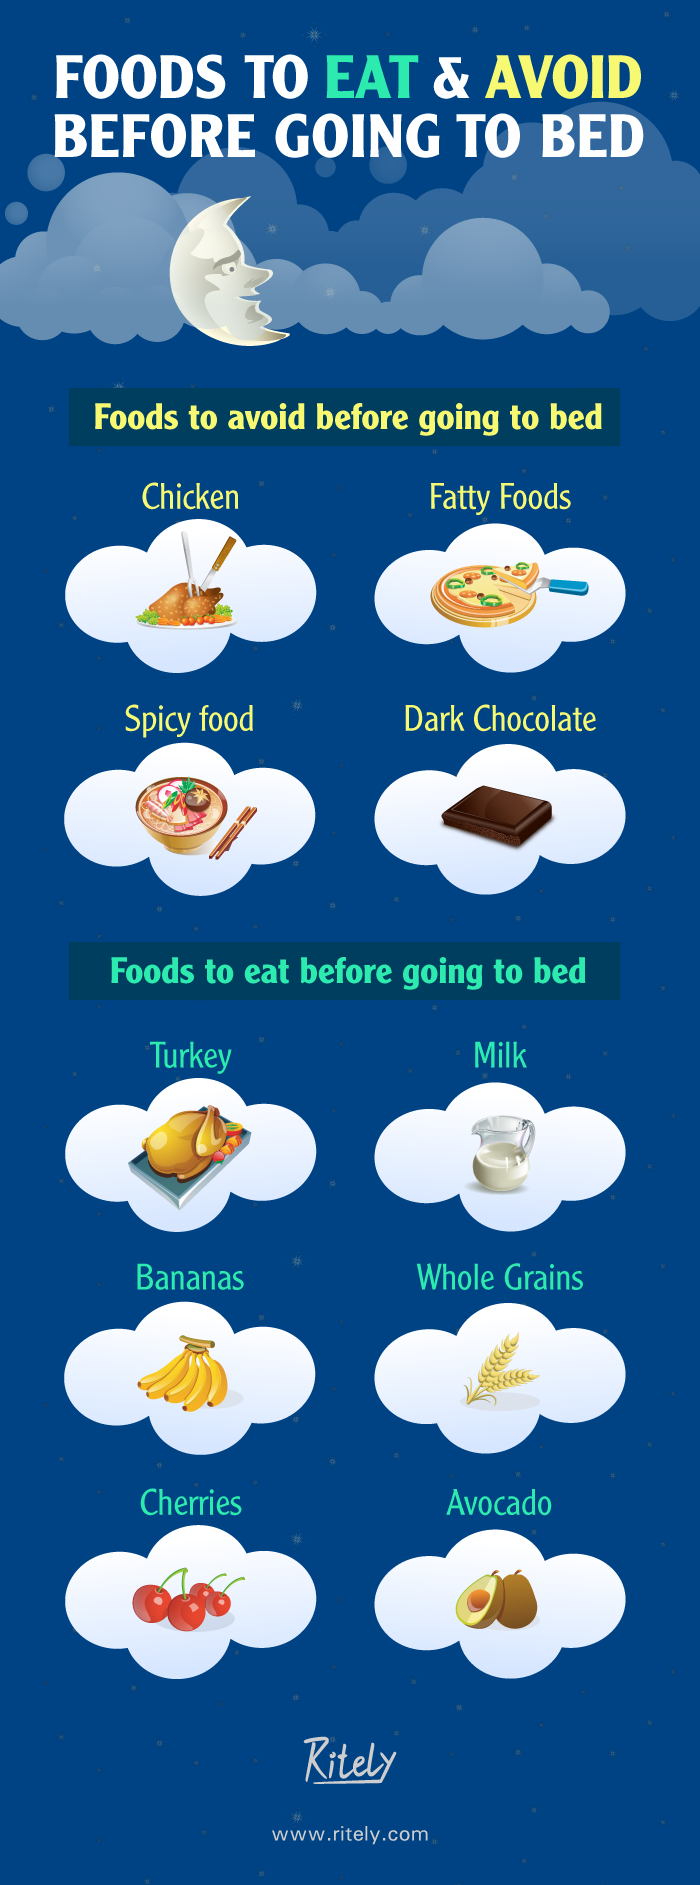 For a Good Night's Sleep: Foods to Eat and Avoid Before Going to Bed